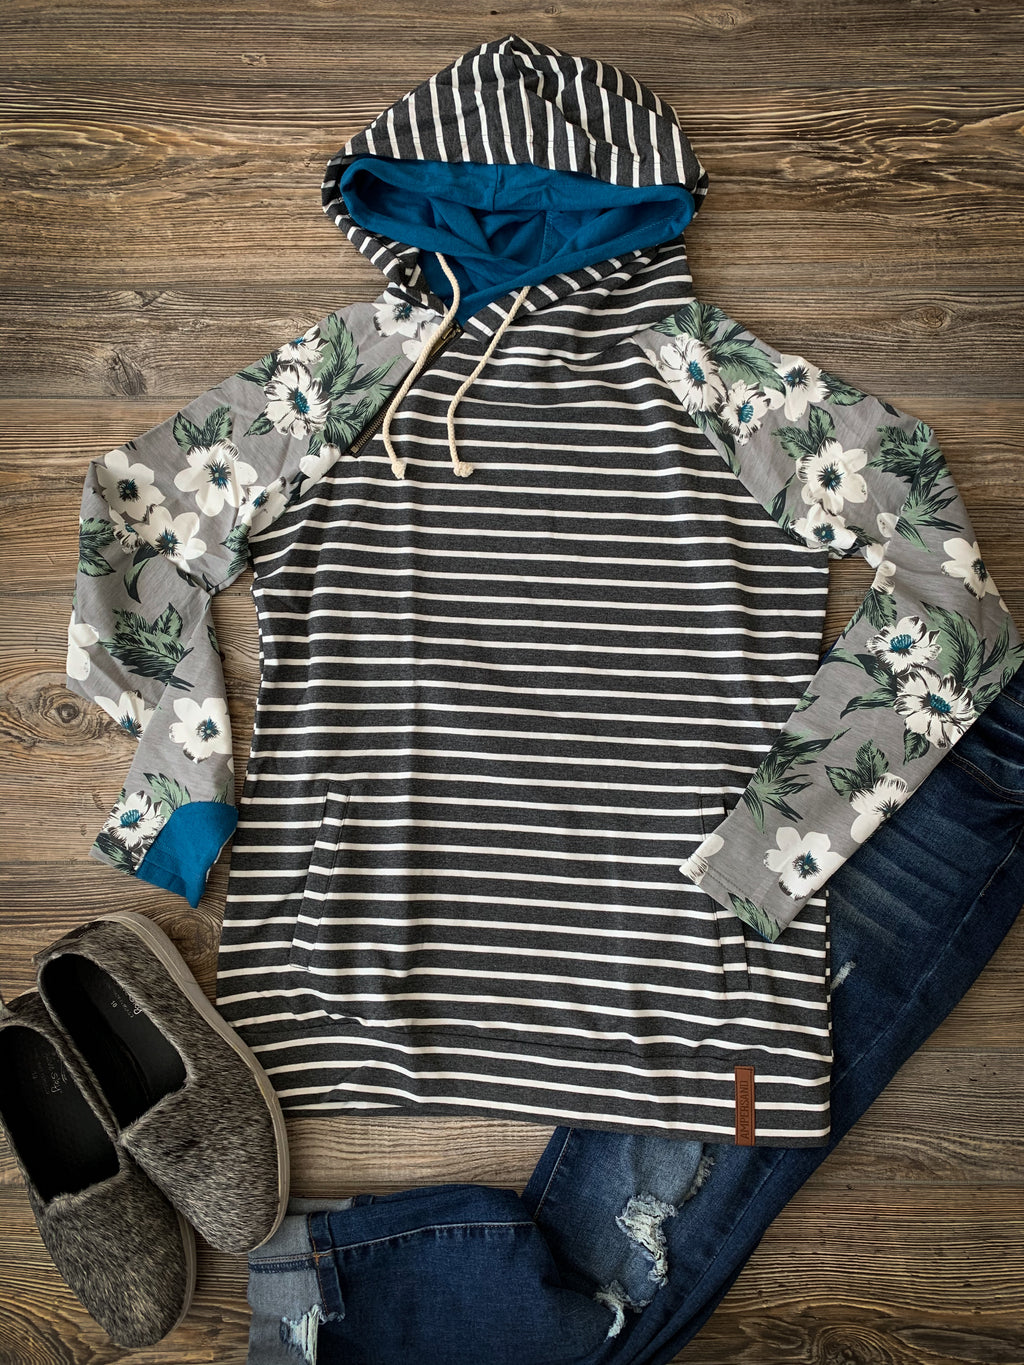 Ampersand Avenue Charcoal Striped Doublehood Sweatshirt